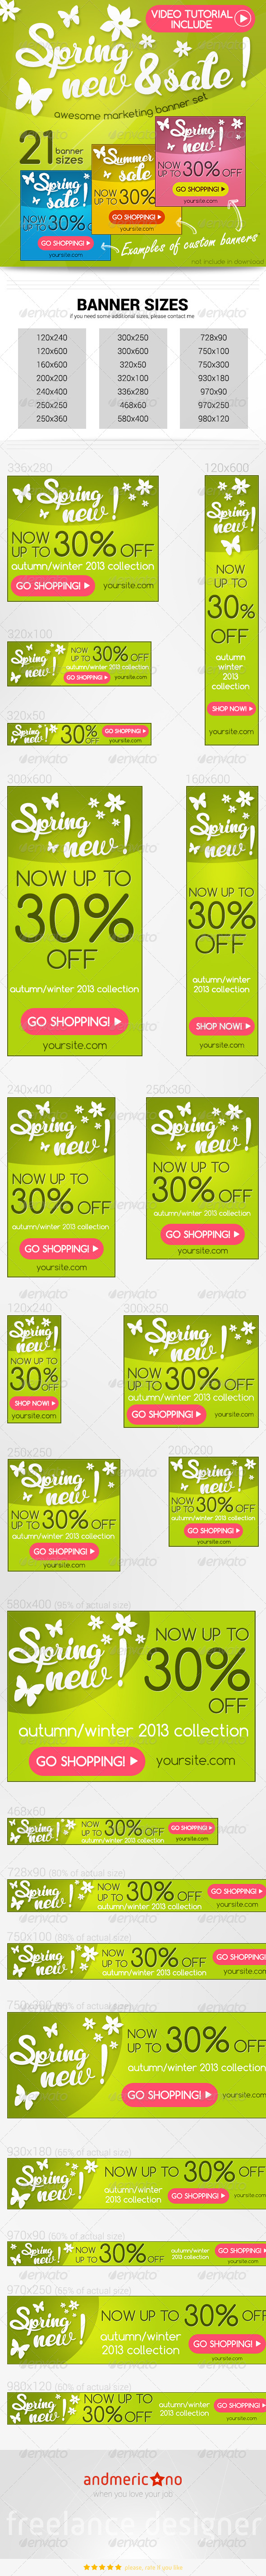 Seasonal Sale Banners - Banners & Ads Web Elements